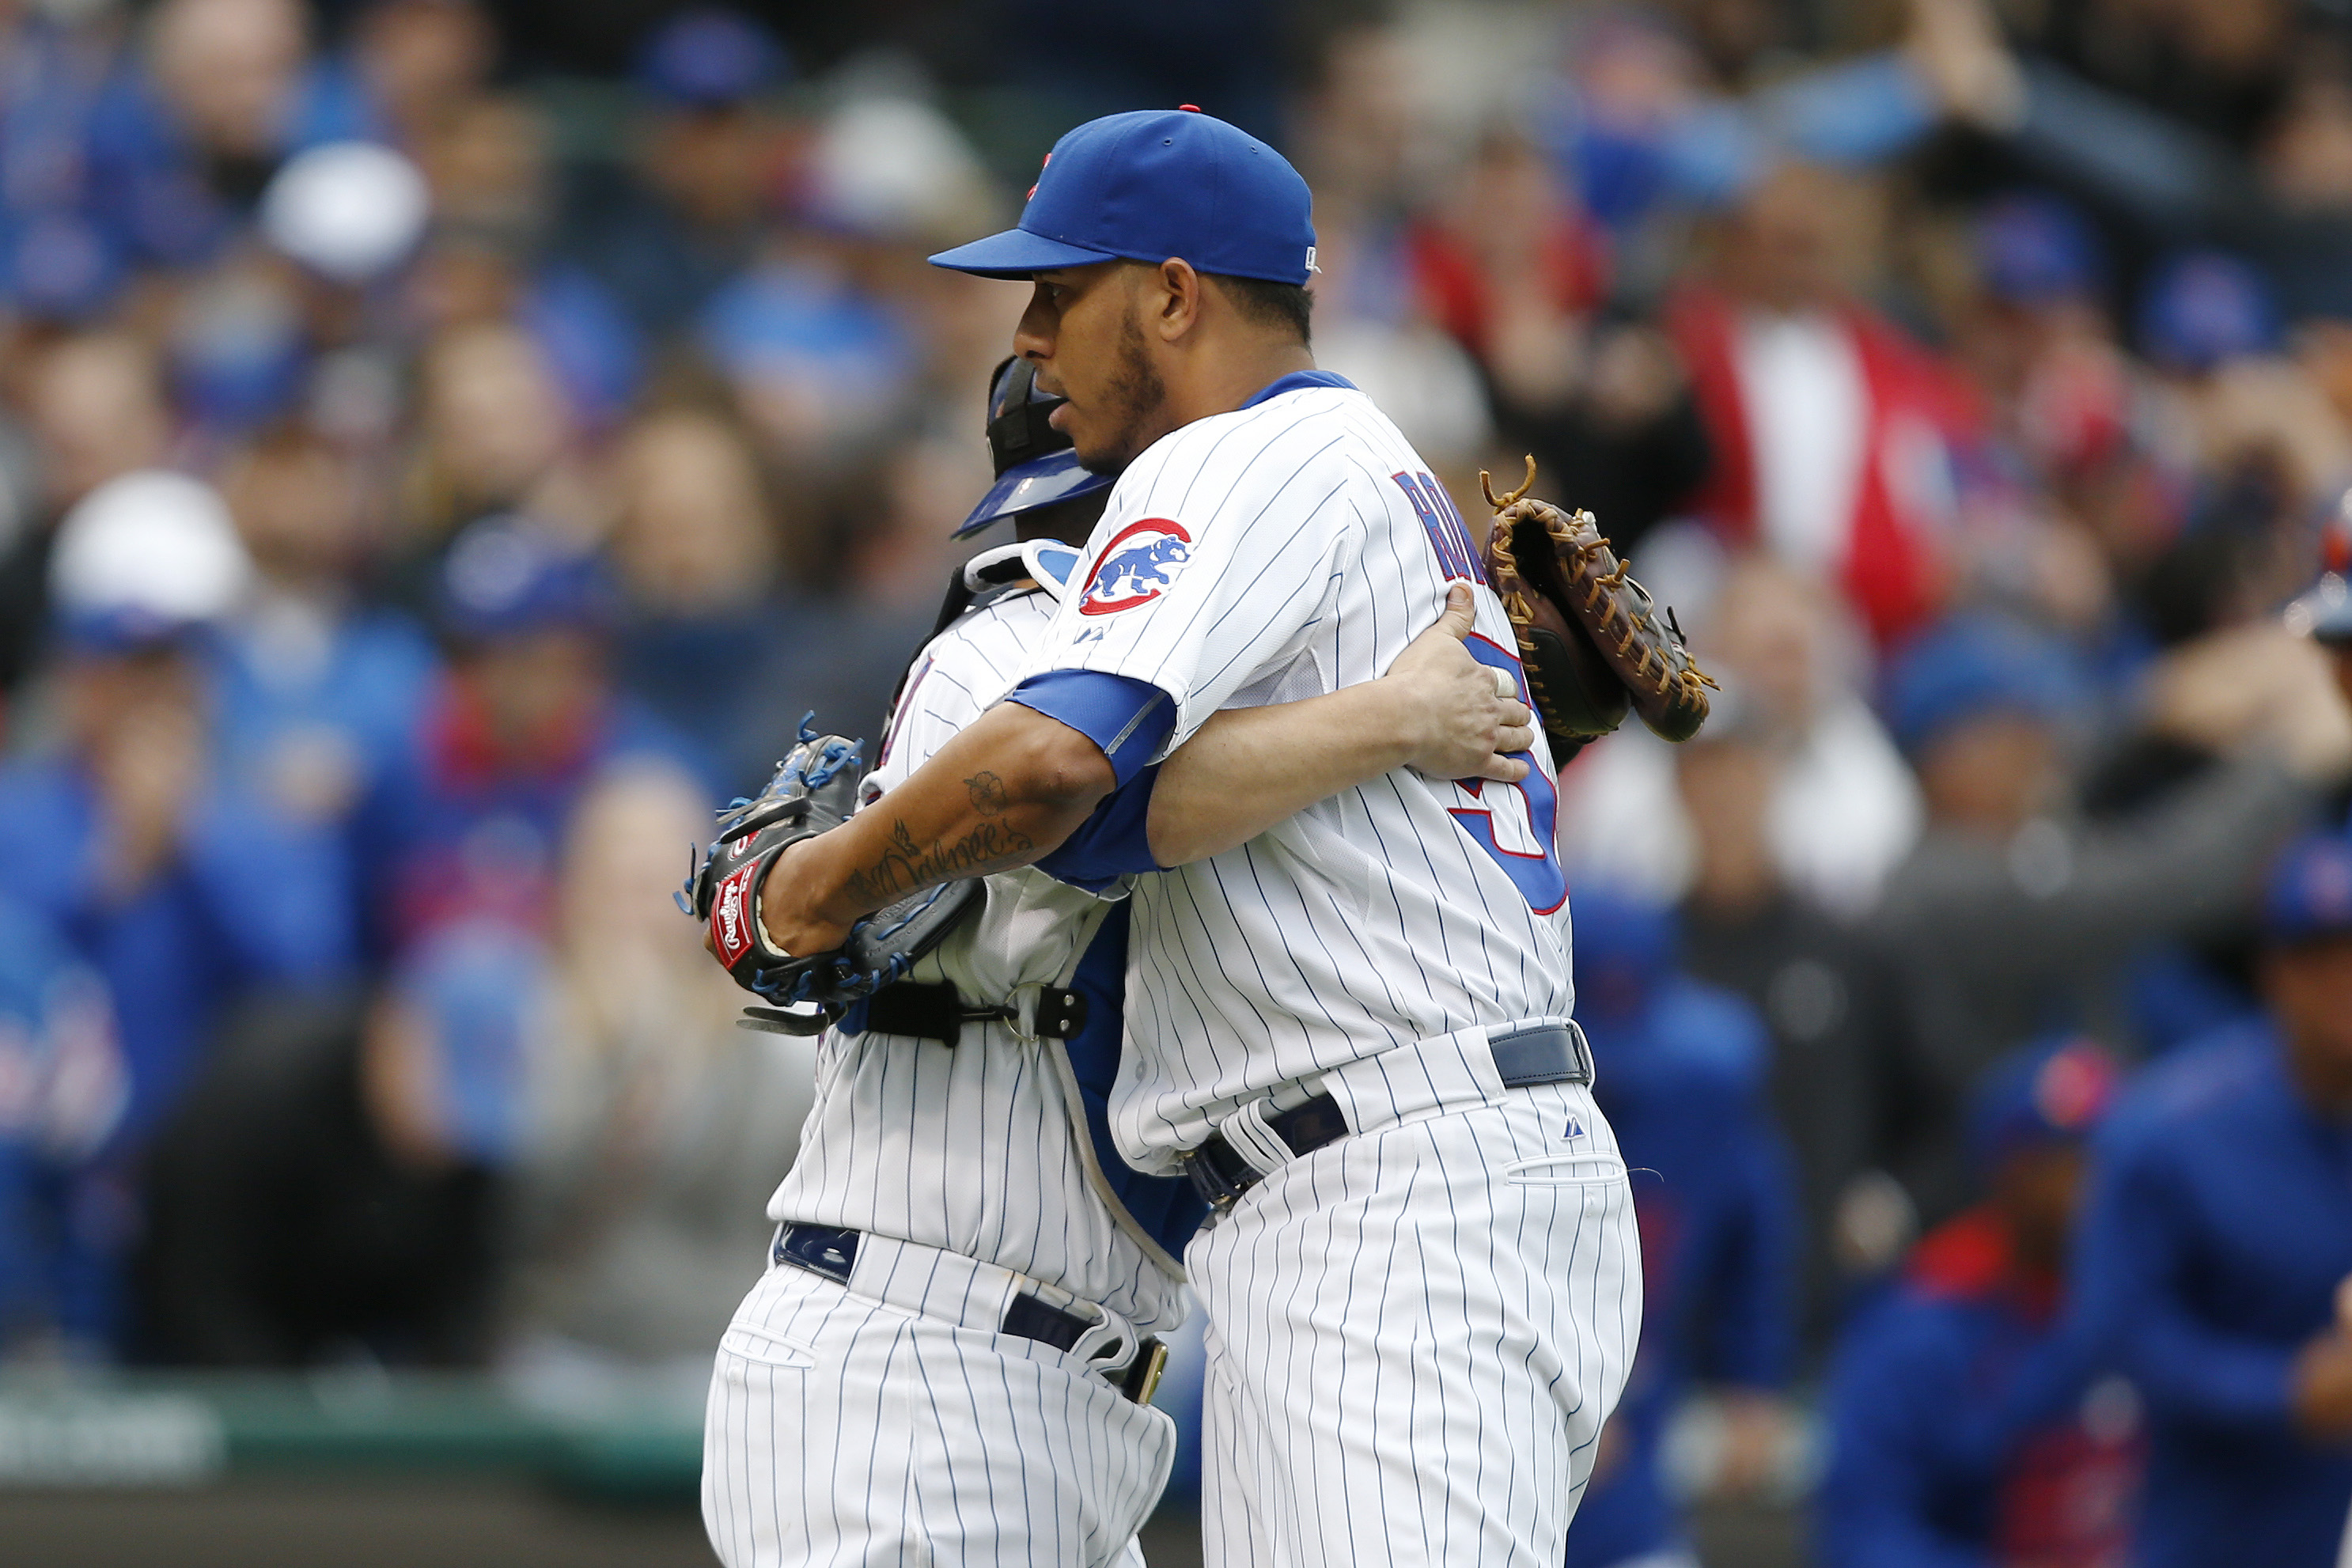 Chicago Cubs relief pitcher Hector Rondon (56) and catcher Miguel Montero (47) react after defeating the New York Mets 6-5 in a baseball game Thursday, May 14, 2015, in Chicago. (AP Photo/Andrew A. Nelles)